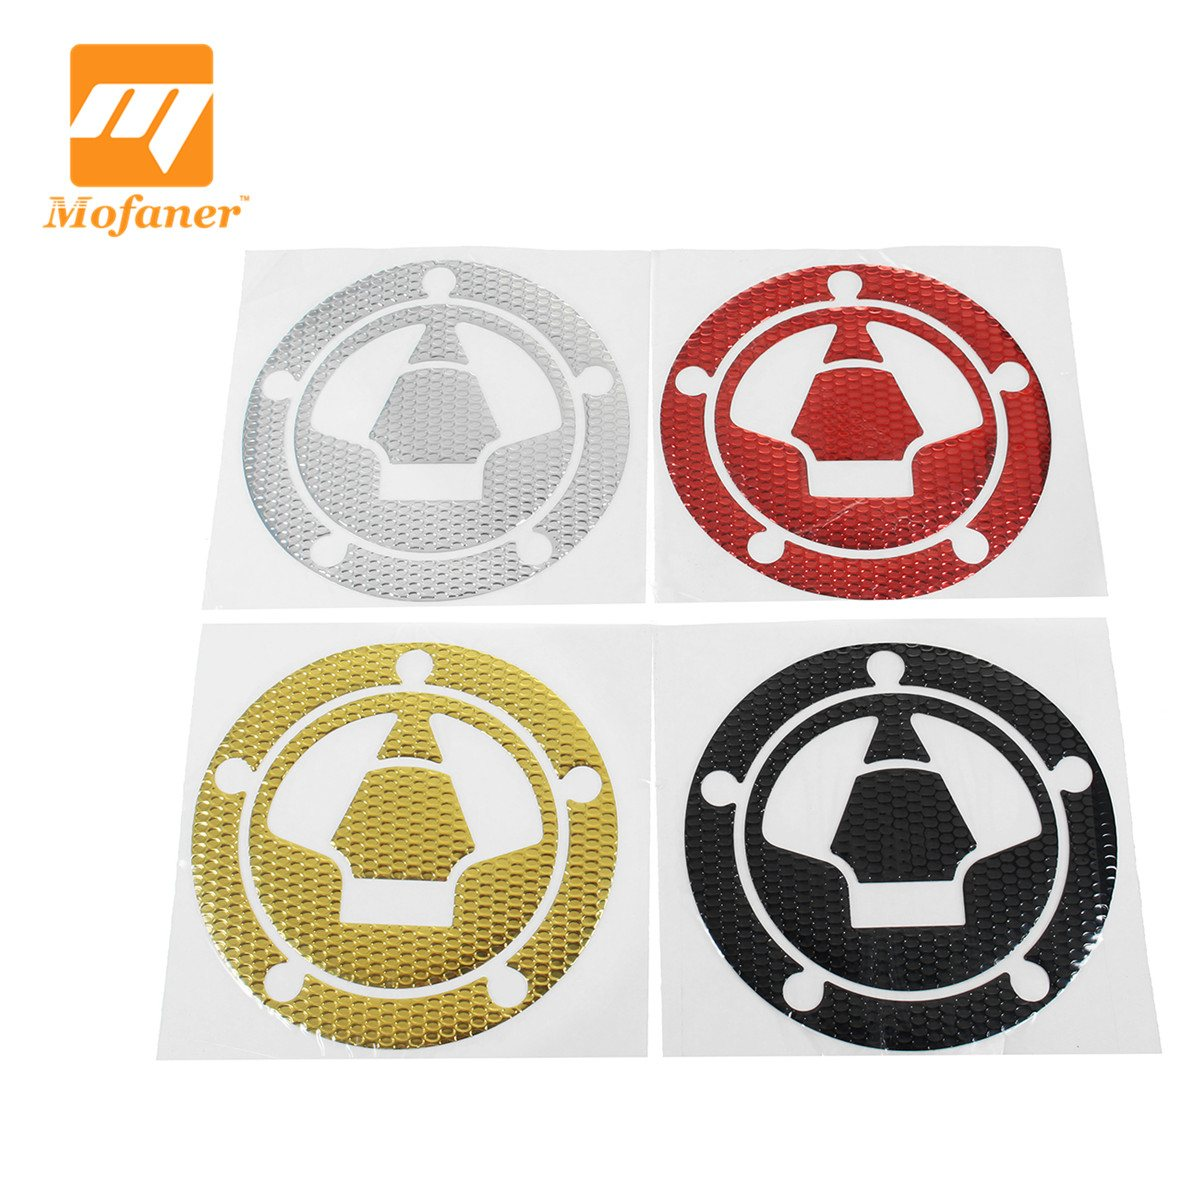 Mofaner Sticker 3D Motorcycle Sticker Gas Fuel Oil Tank Pad Protector Cover Decals For Kawasaki ZX-6R/10R/12R/14R Z750 Z800